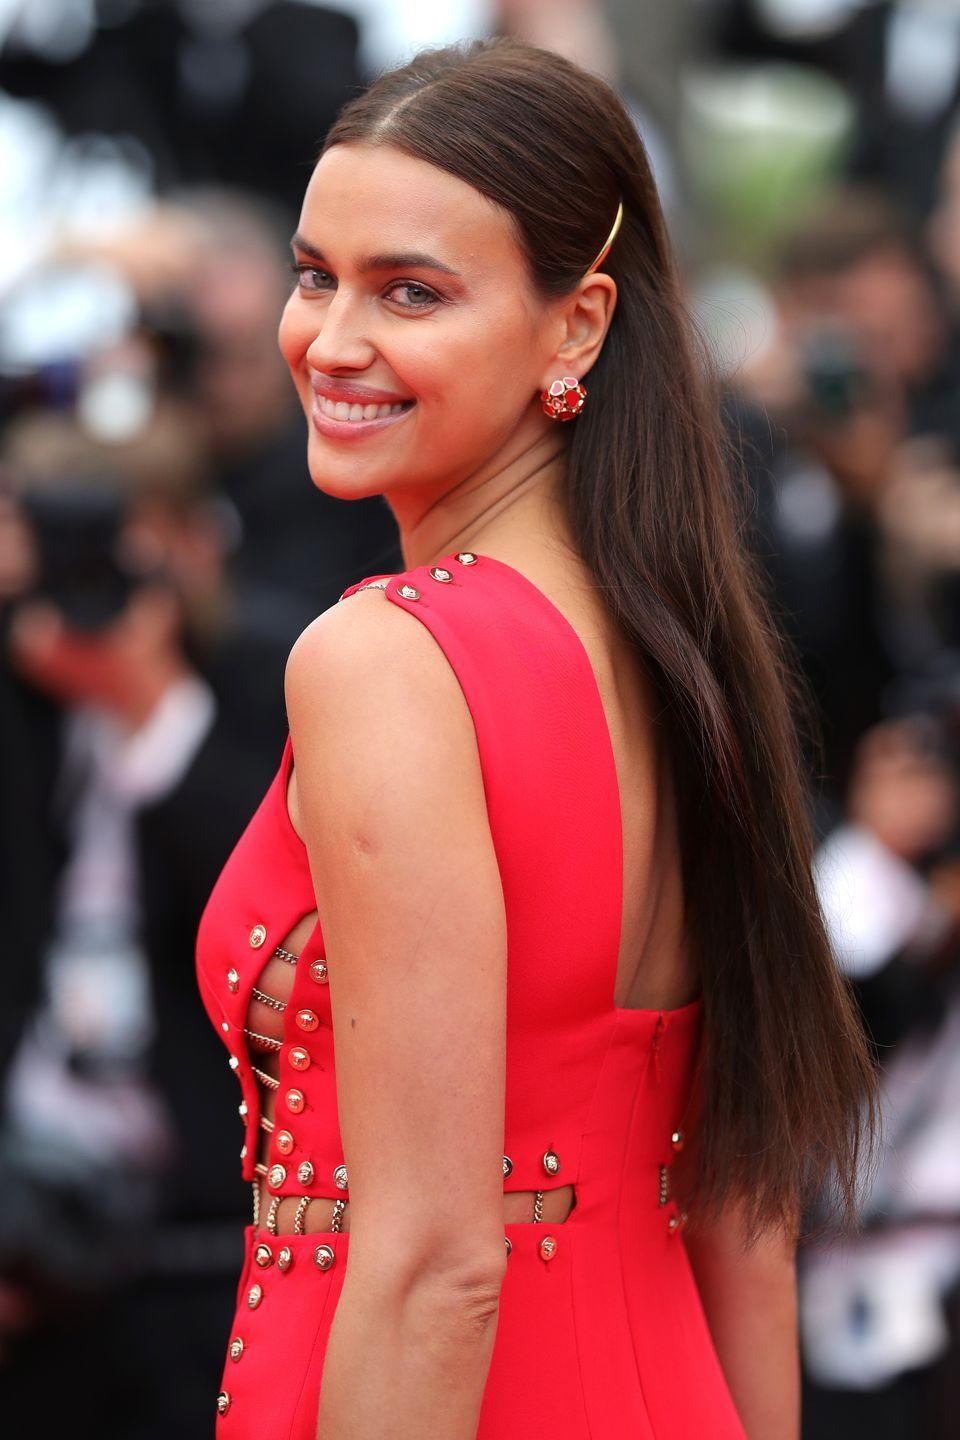 "<p><strong>Born</strong>: Irina Shaykhlislamov</p><p>Irina Shayk's real last name is Shaykhlislamov, as <em><a href=""https://observer.com/2010/09/hot-supermodel-shayks-perry-street-condo/"" rel=""nofollow noopener"" target=""_blank"" data-ylk=""slk:Observer"" class=""link rapid-noclick-resp"">Observer</a></em> reported after catching her legal name on the deed of her Manhattan apartment. </p>"